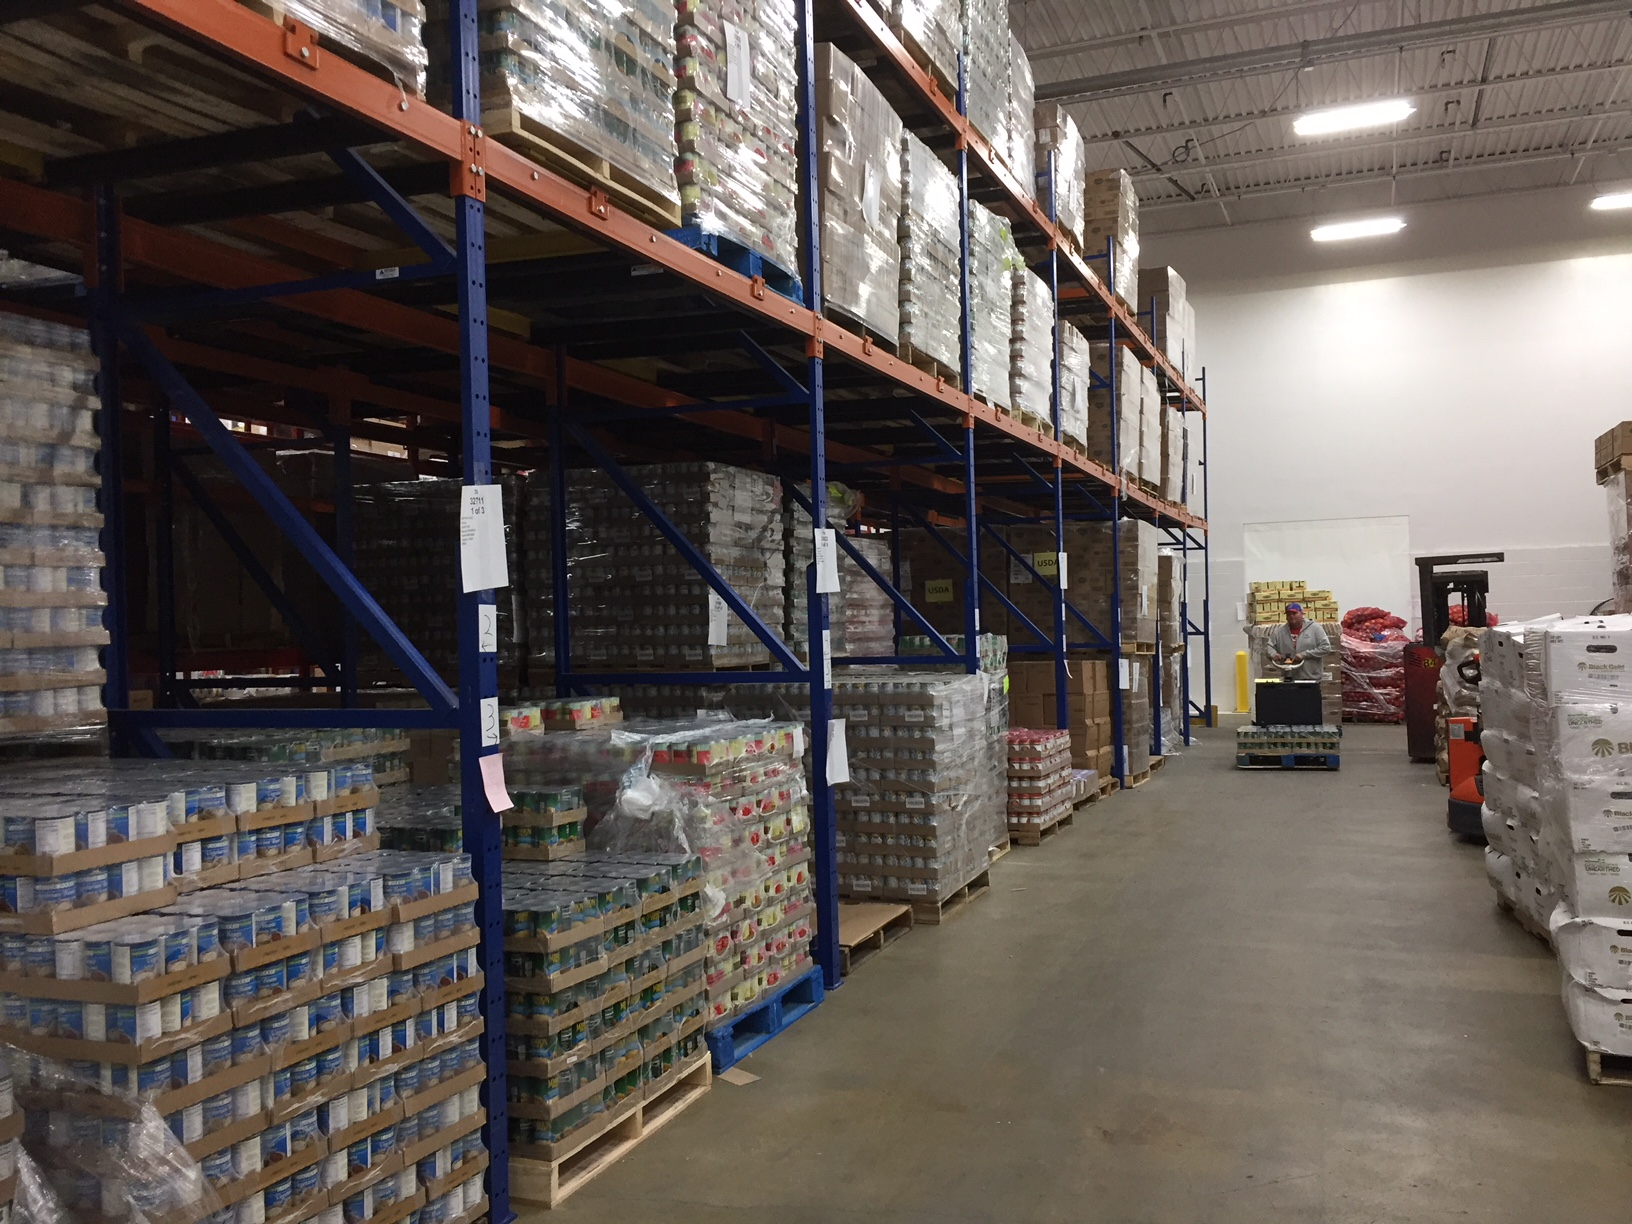 The Food Bank of Iowa's distribution center in east Des Moines. (Photo courtesy of Food Bank of Iowa)